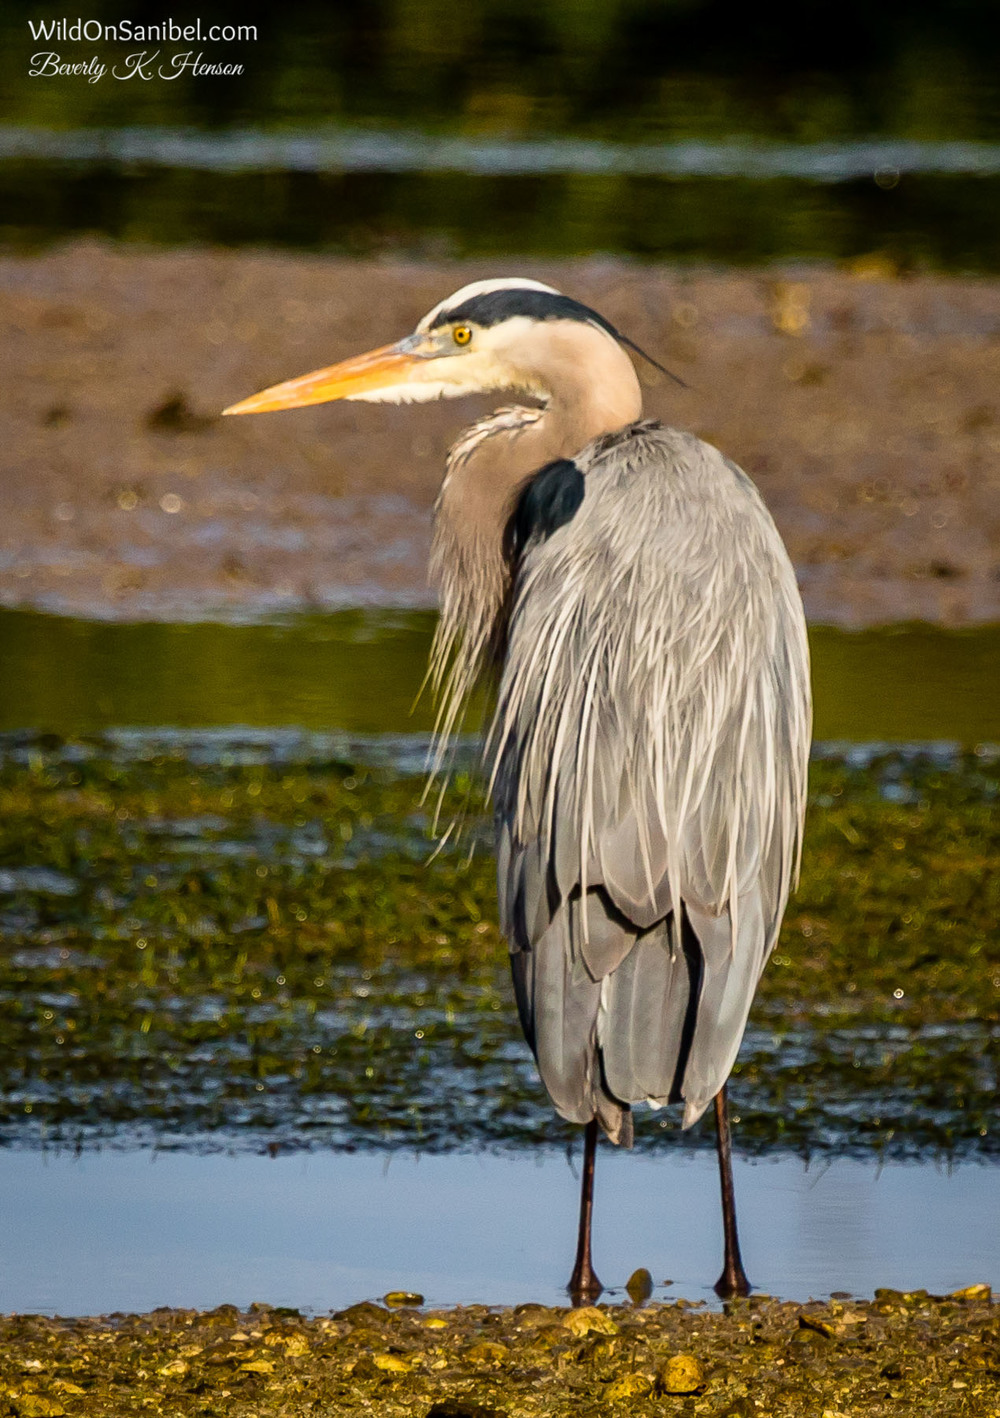 Love getting to see a Great Blue Heron!